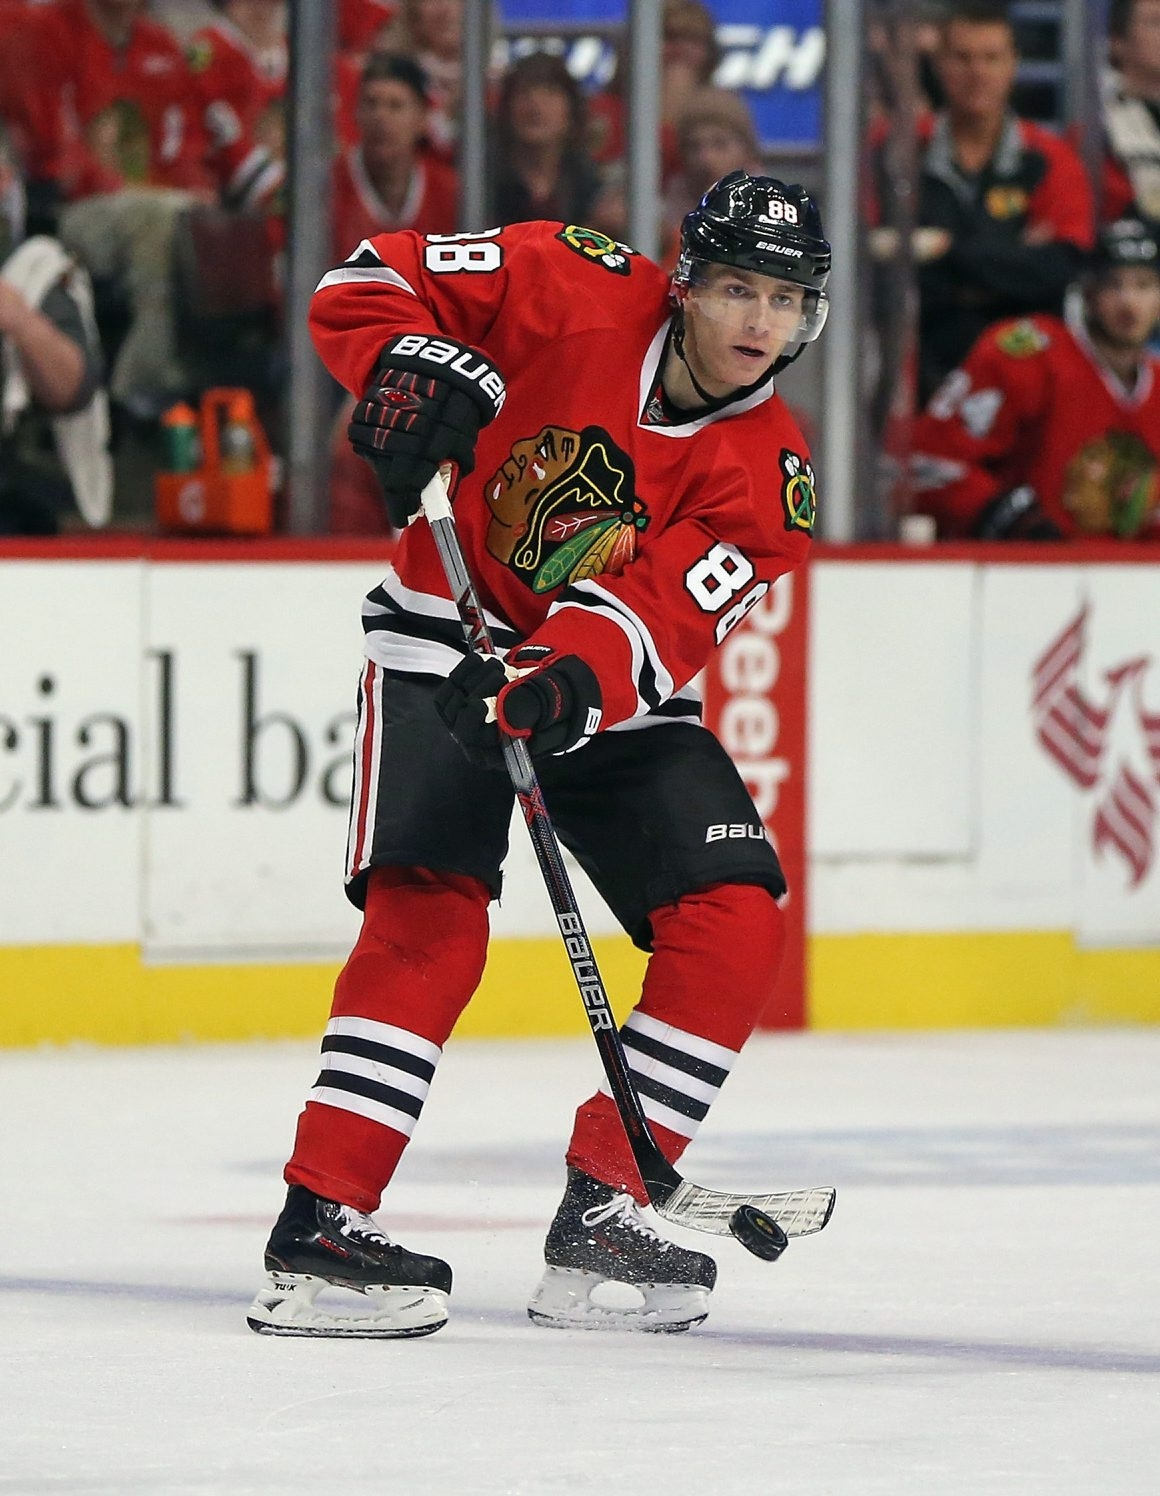 The first Western New Yorker drafted first overall in the NHL, Patrick Kane is on his way to a Hall of Fame career.